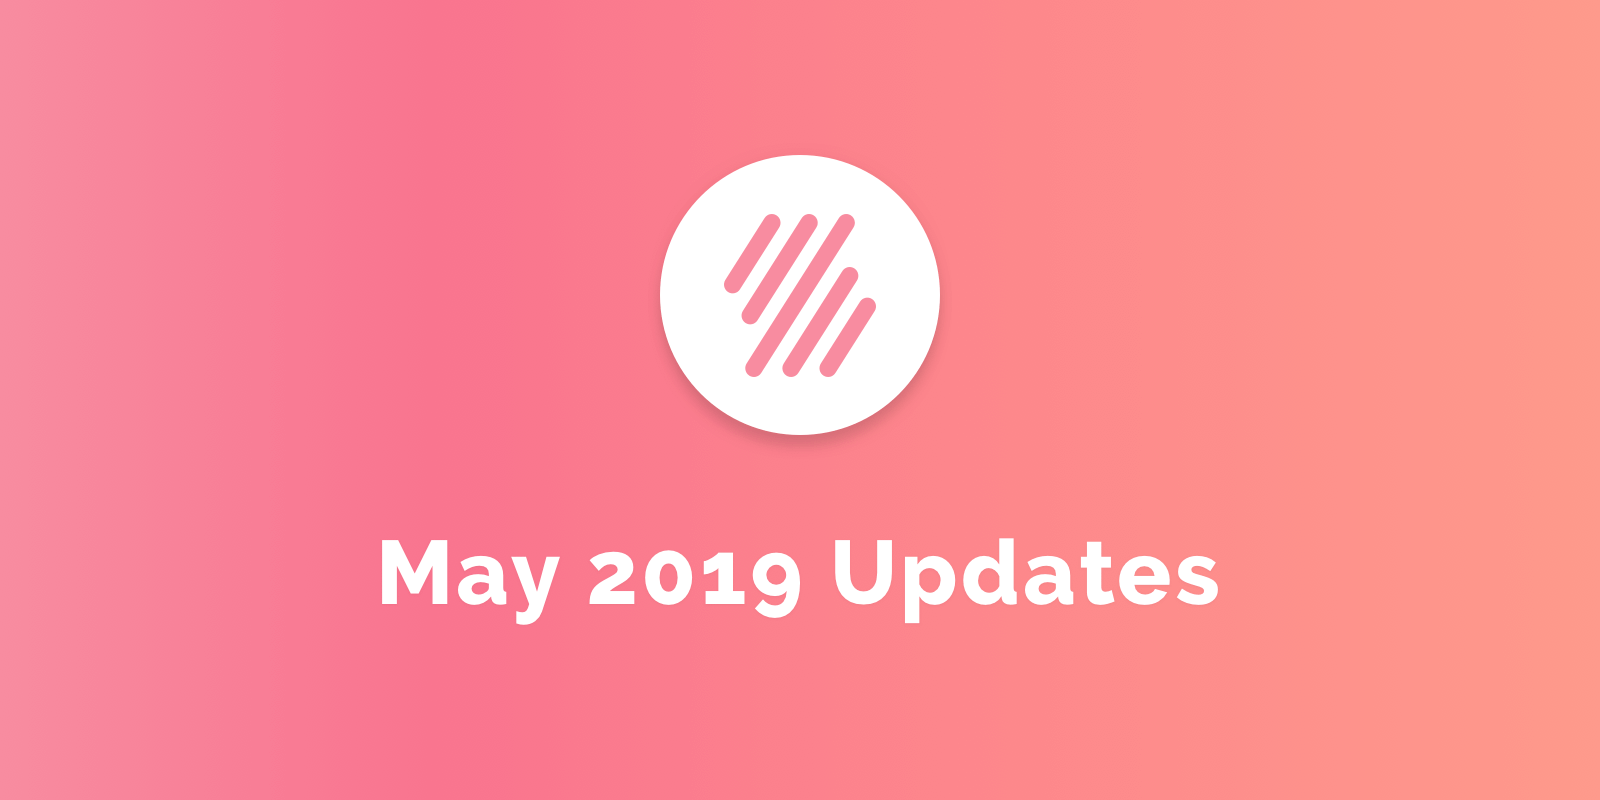 May 2019 Updates